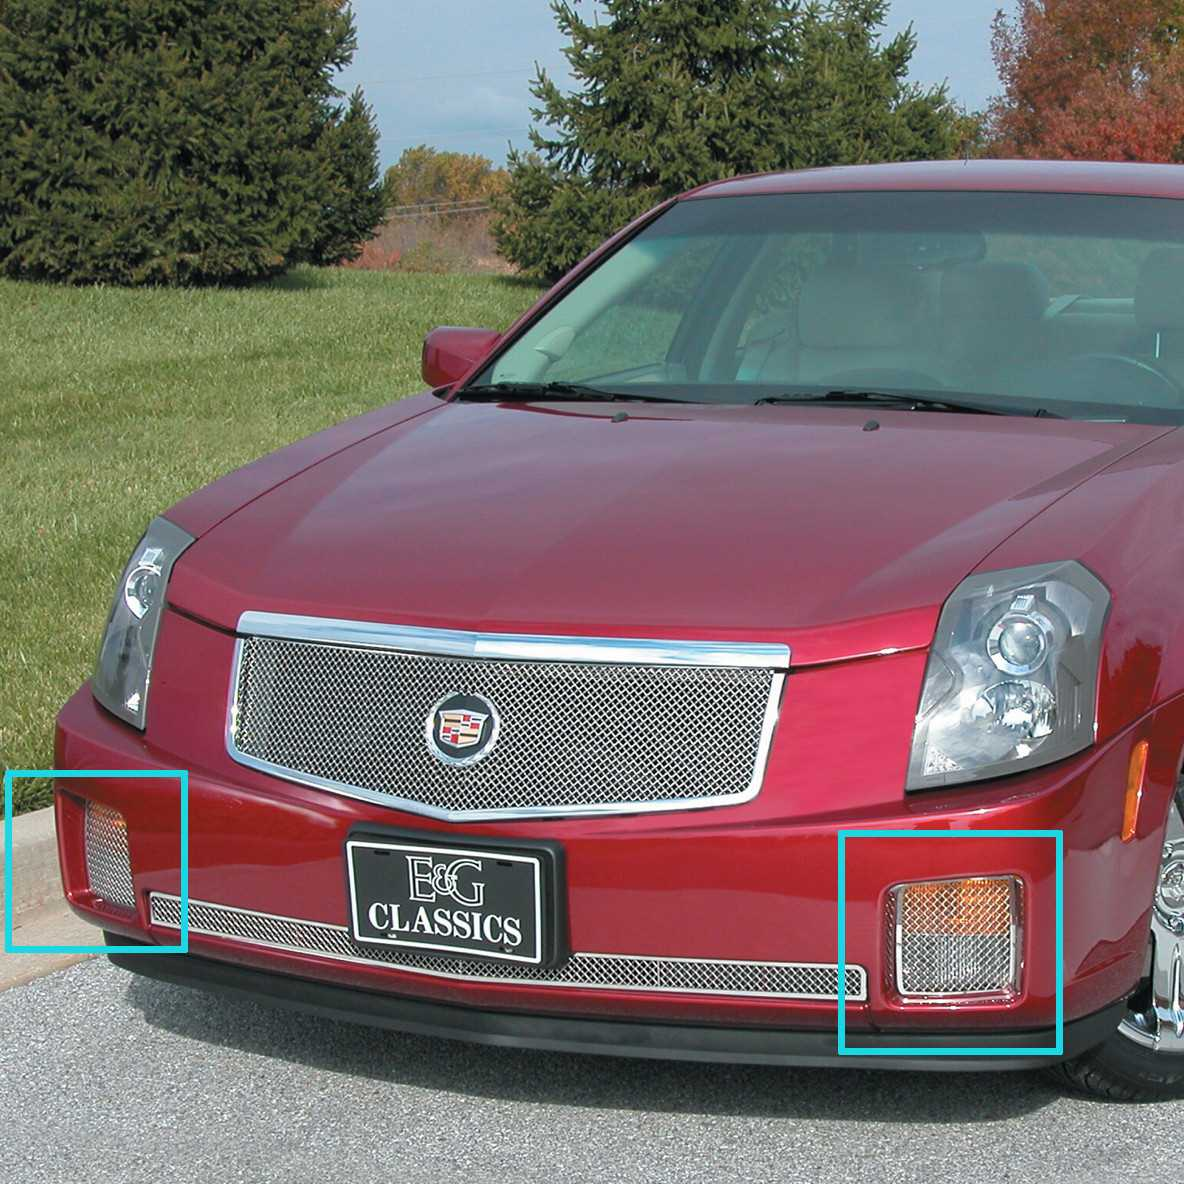 E g classicse g classics 2003 2007 cadillac cts grille classic mesh grille driving light option 1007 010w 03